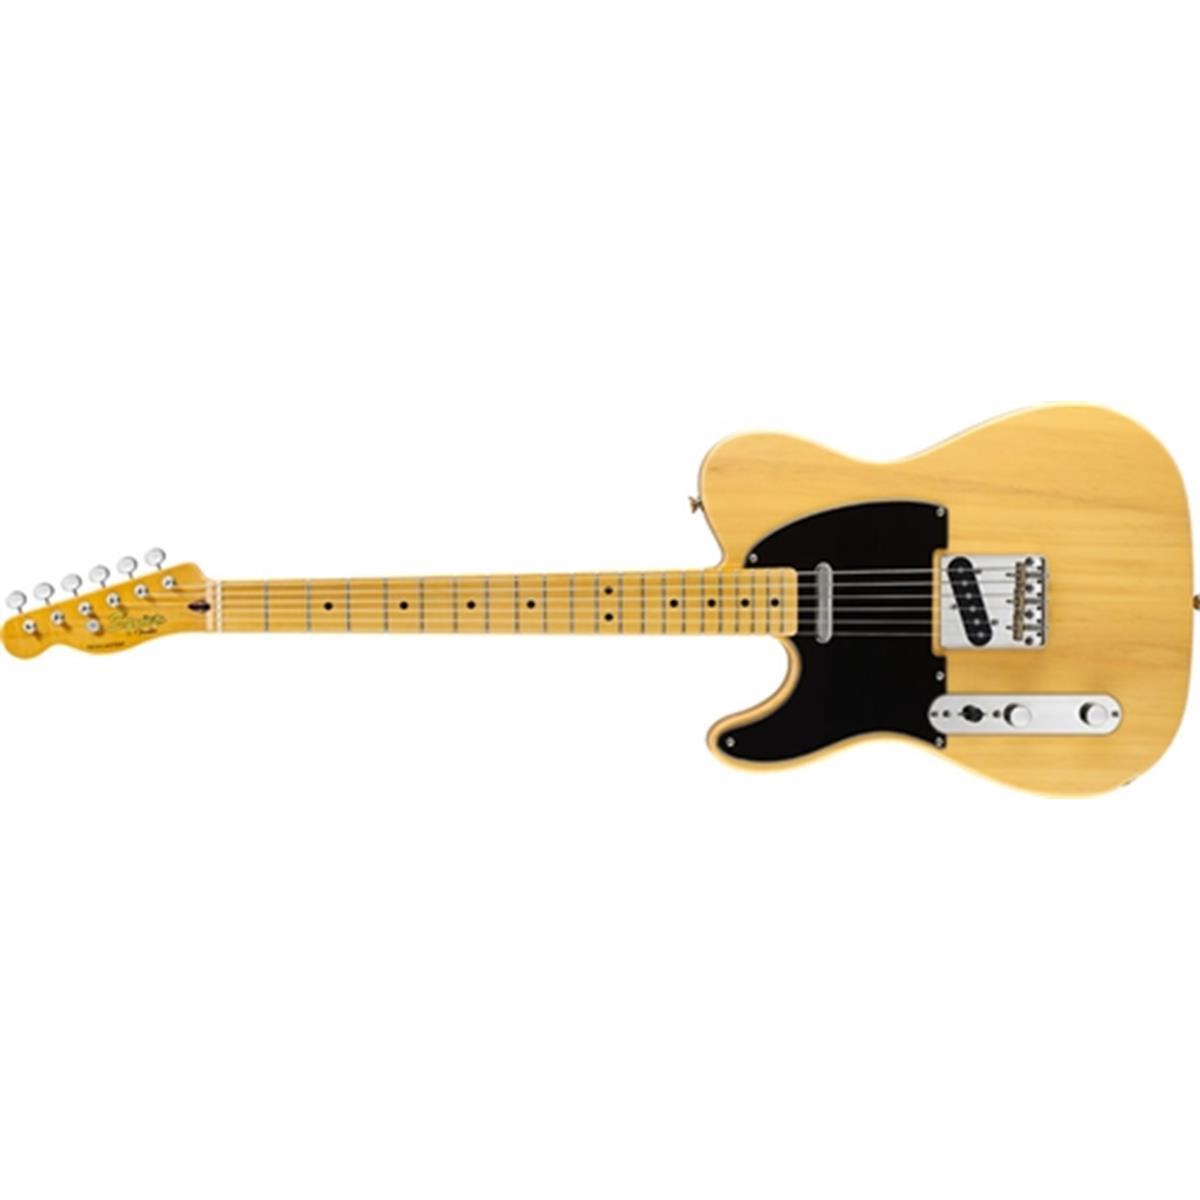 SQUIER-CLASSIC-VIBE-TELECASTER-50-LH-BUTTERSCOTCH-BLONDE-MANCINA-LEFT-HANDED-0374035550-sku-14014